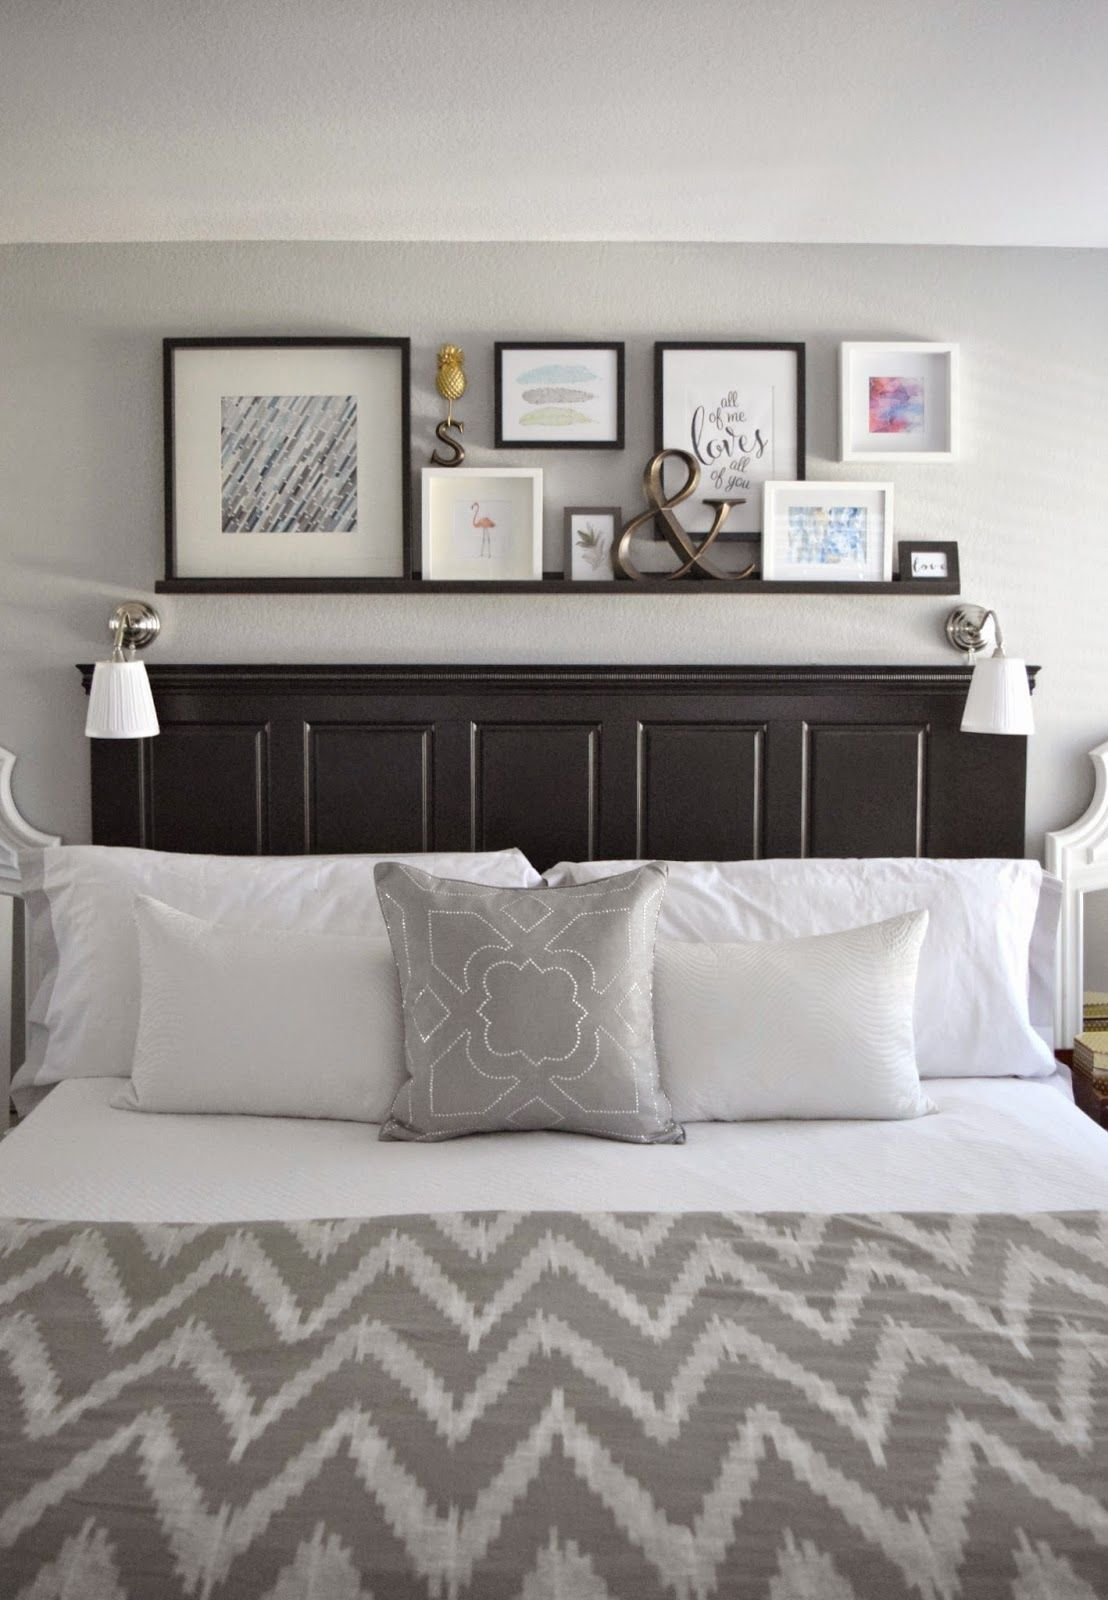 20 Decorating Tricks For Your Bedroom In